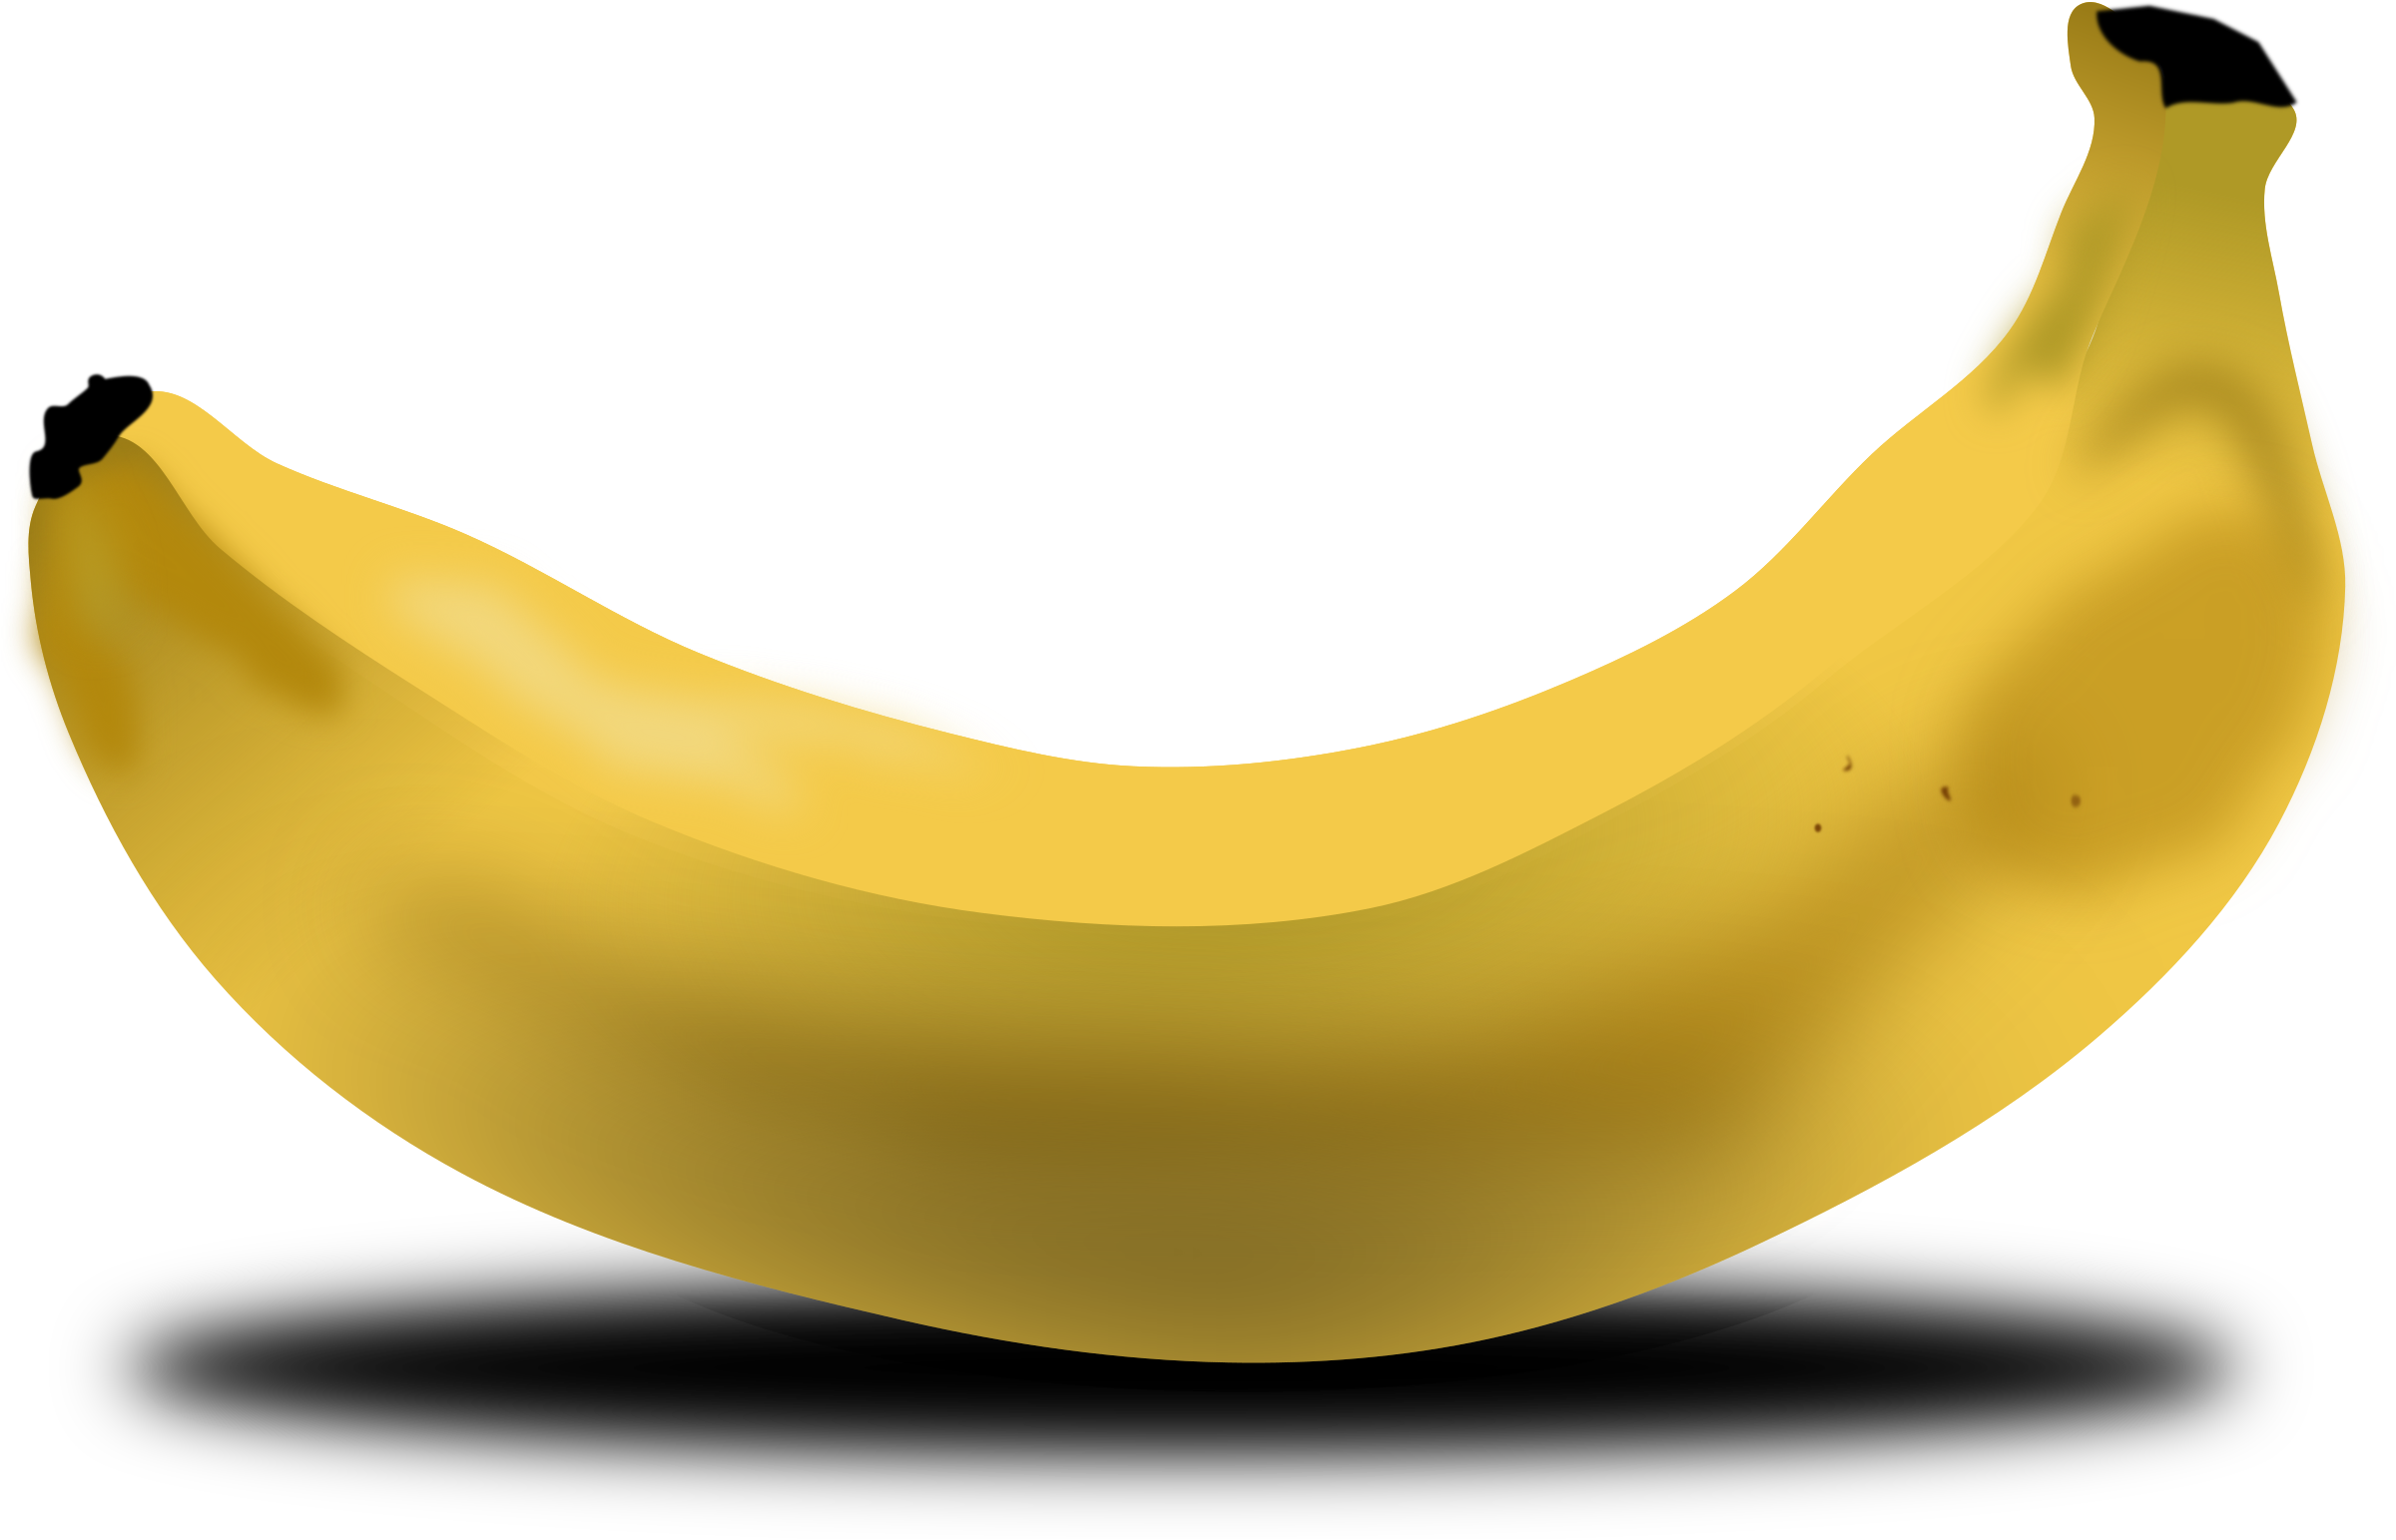 bananas png - photo #25